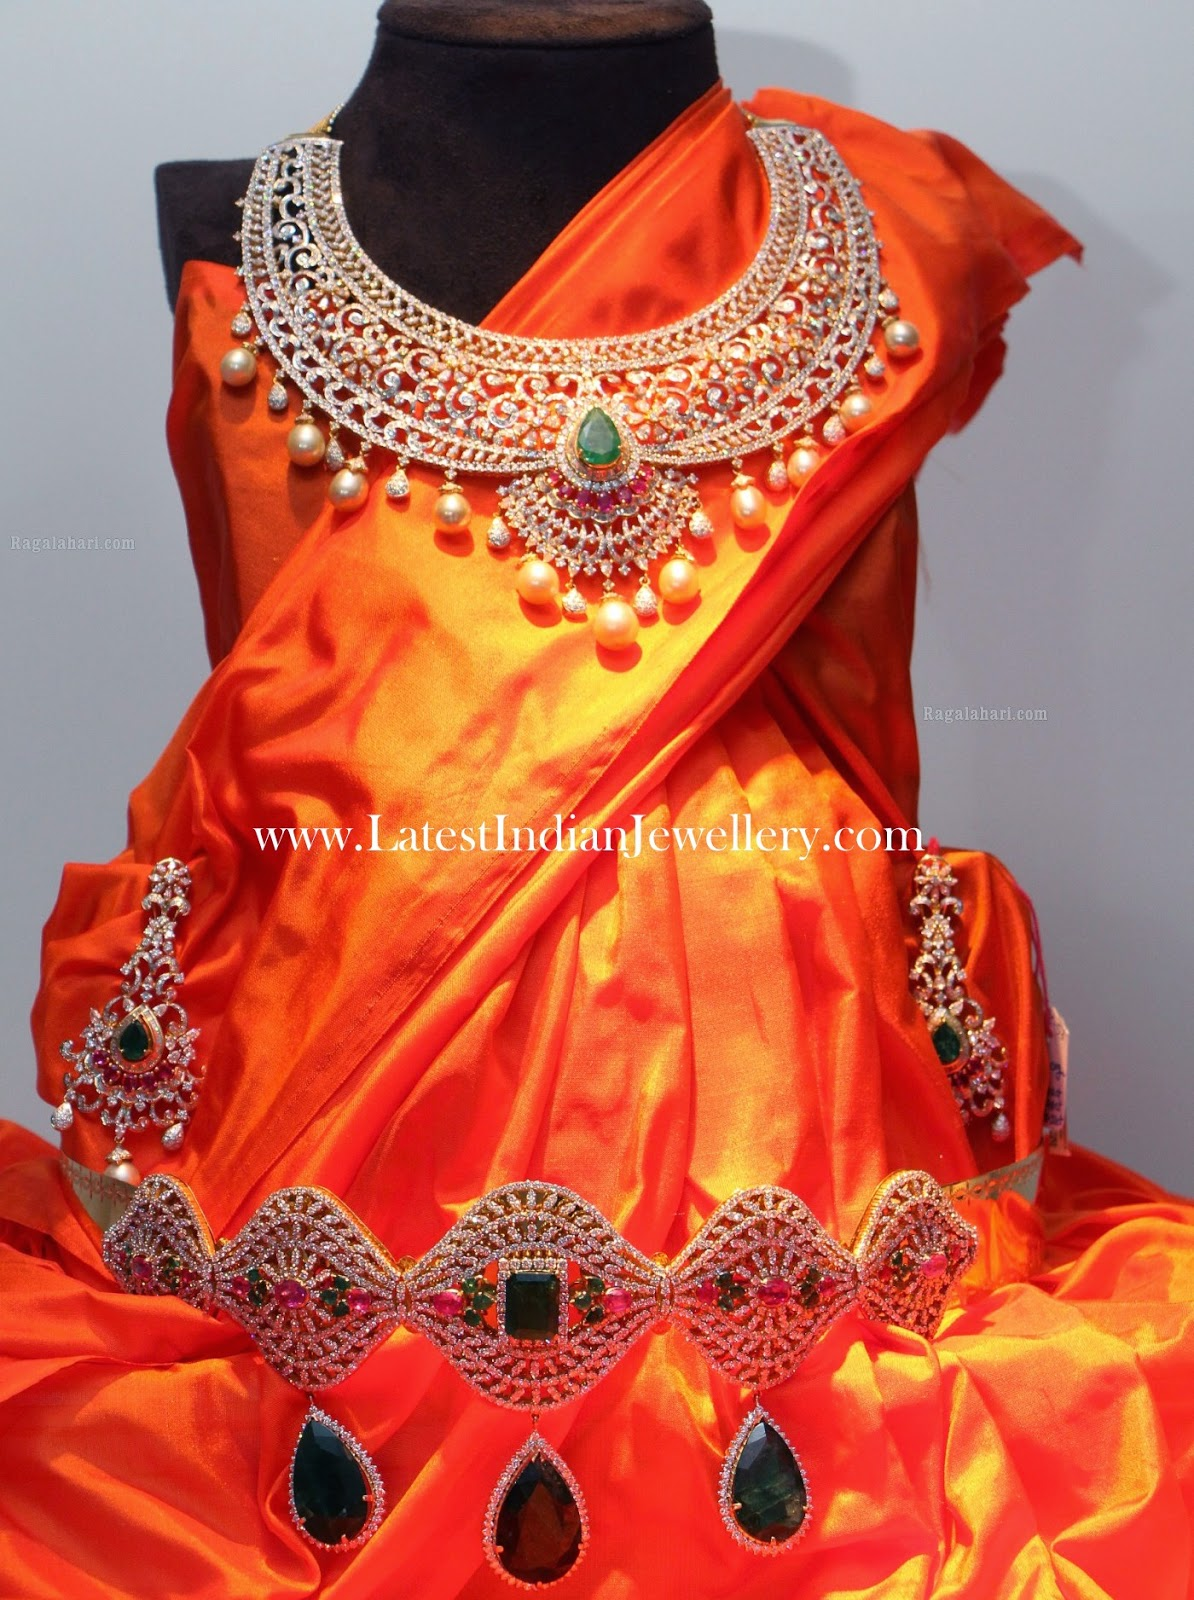 Diamond Necklace Vaddanam set